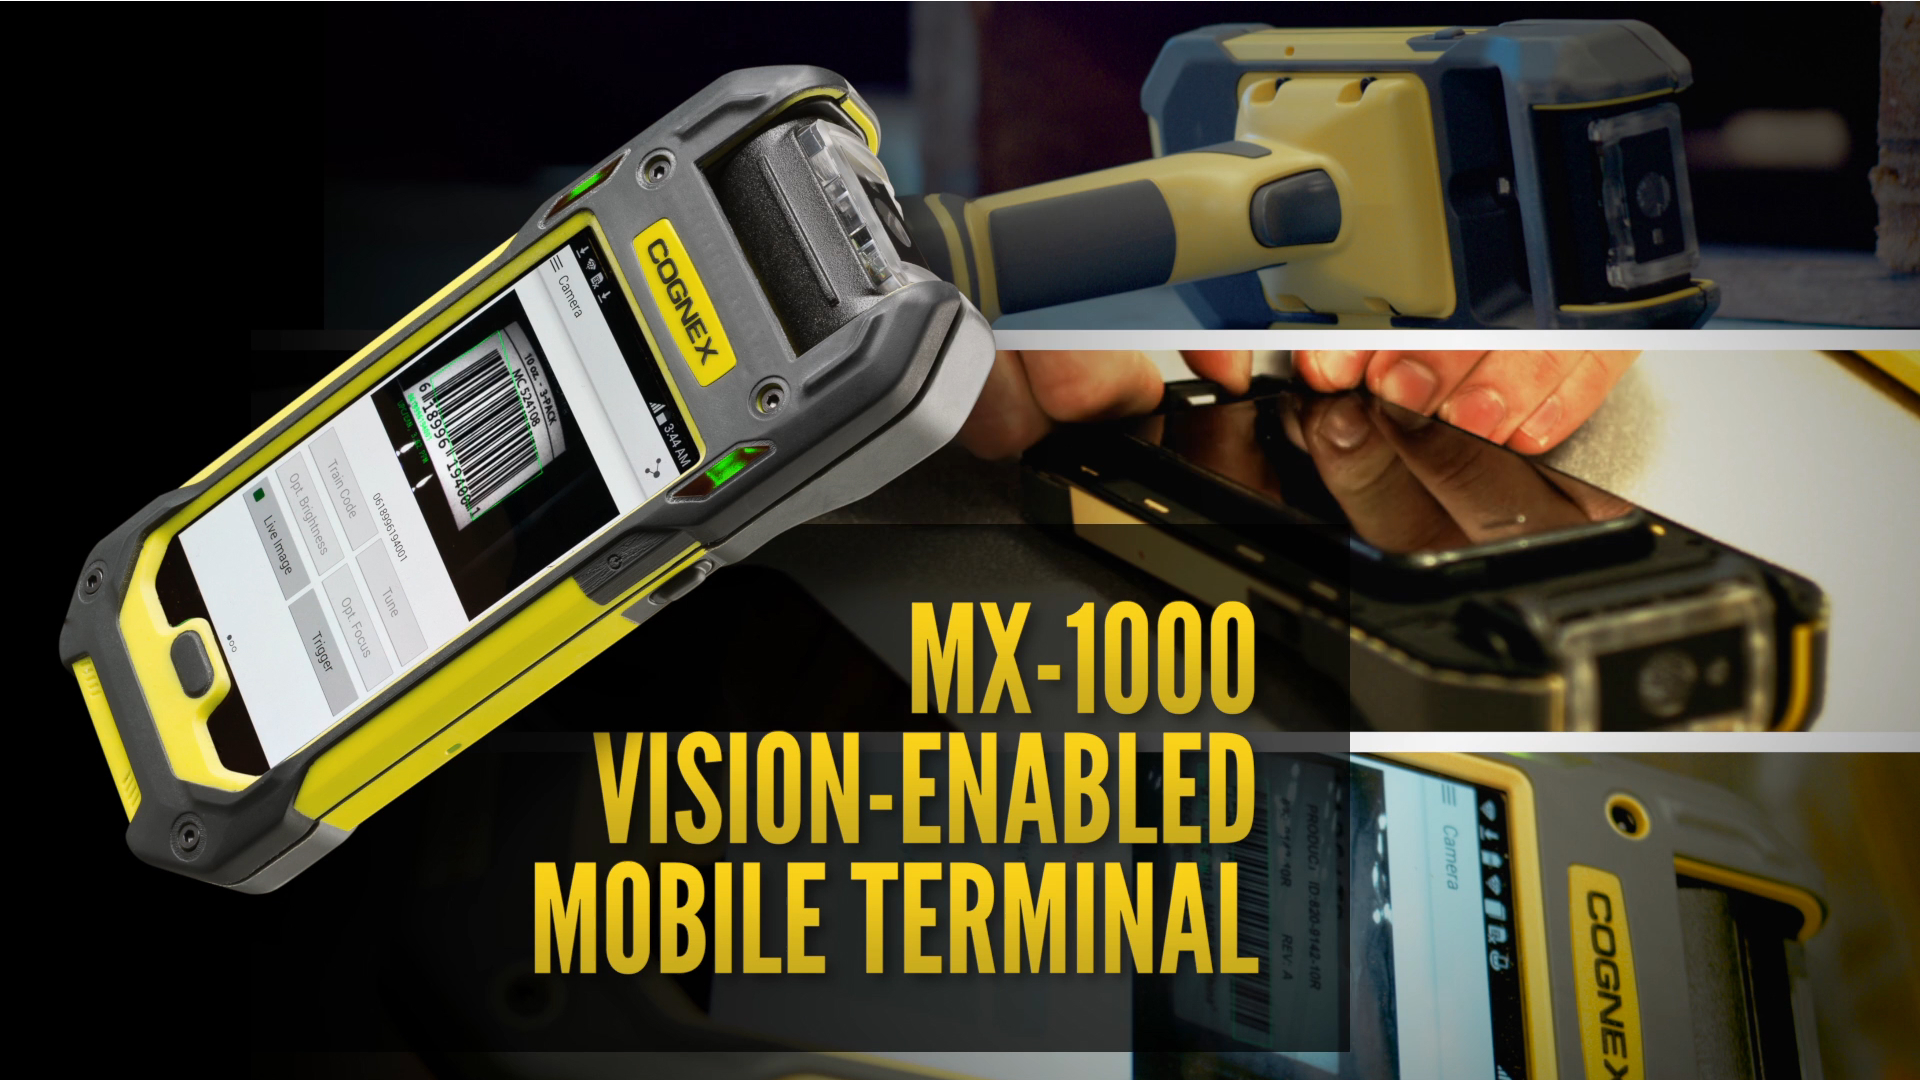 MX-1000 Vision-enabled Mobile Terminal for Courier and Parcel Delivery Applications